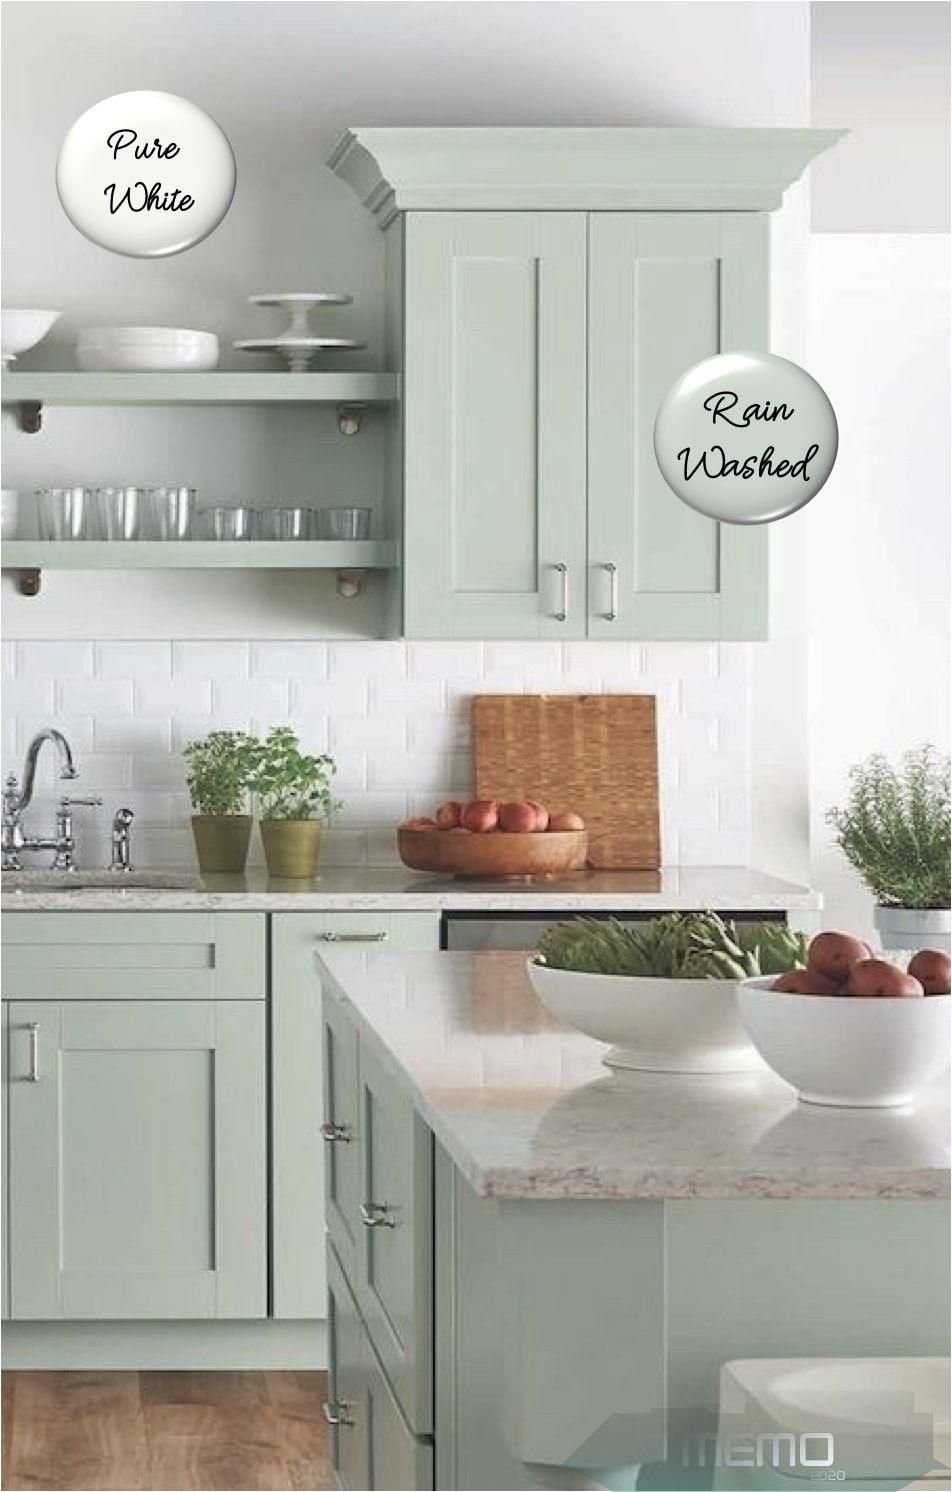 Gray Is A Classic Timeless Cabinet Color White Kitchen Interior Design White Kitchen Interior Interior Design Kitchen